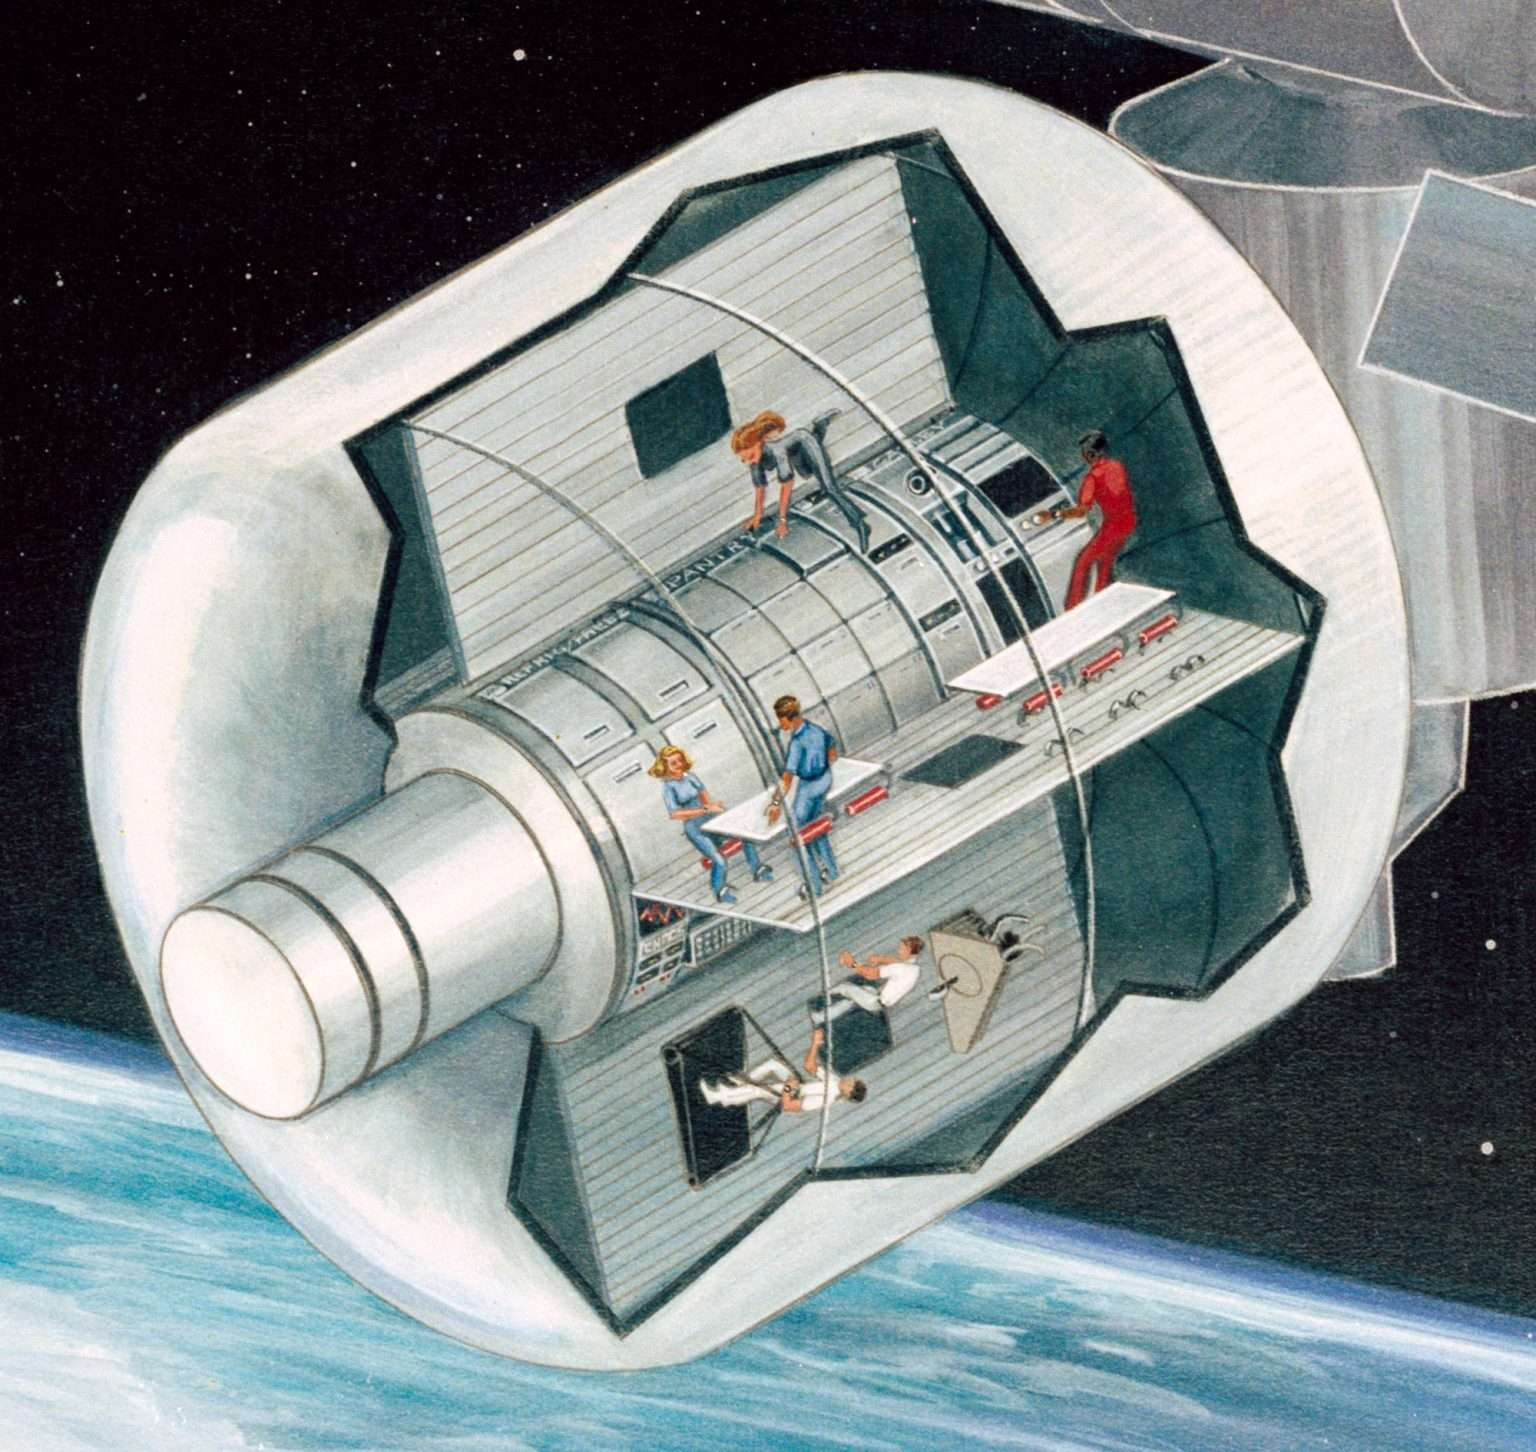 A competition mOOO5 inclusive inhabitation HMM Human Mission to Mars